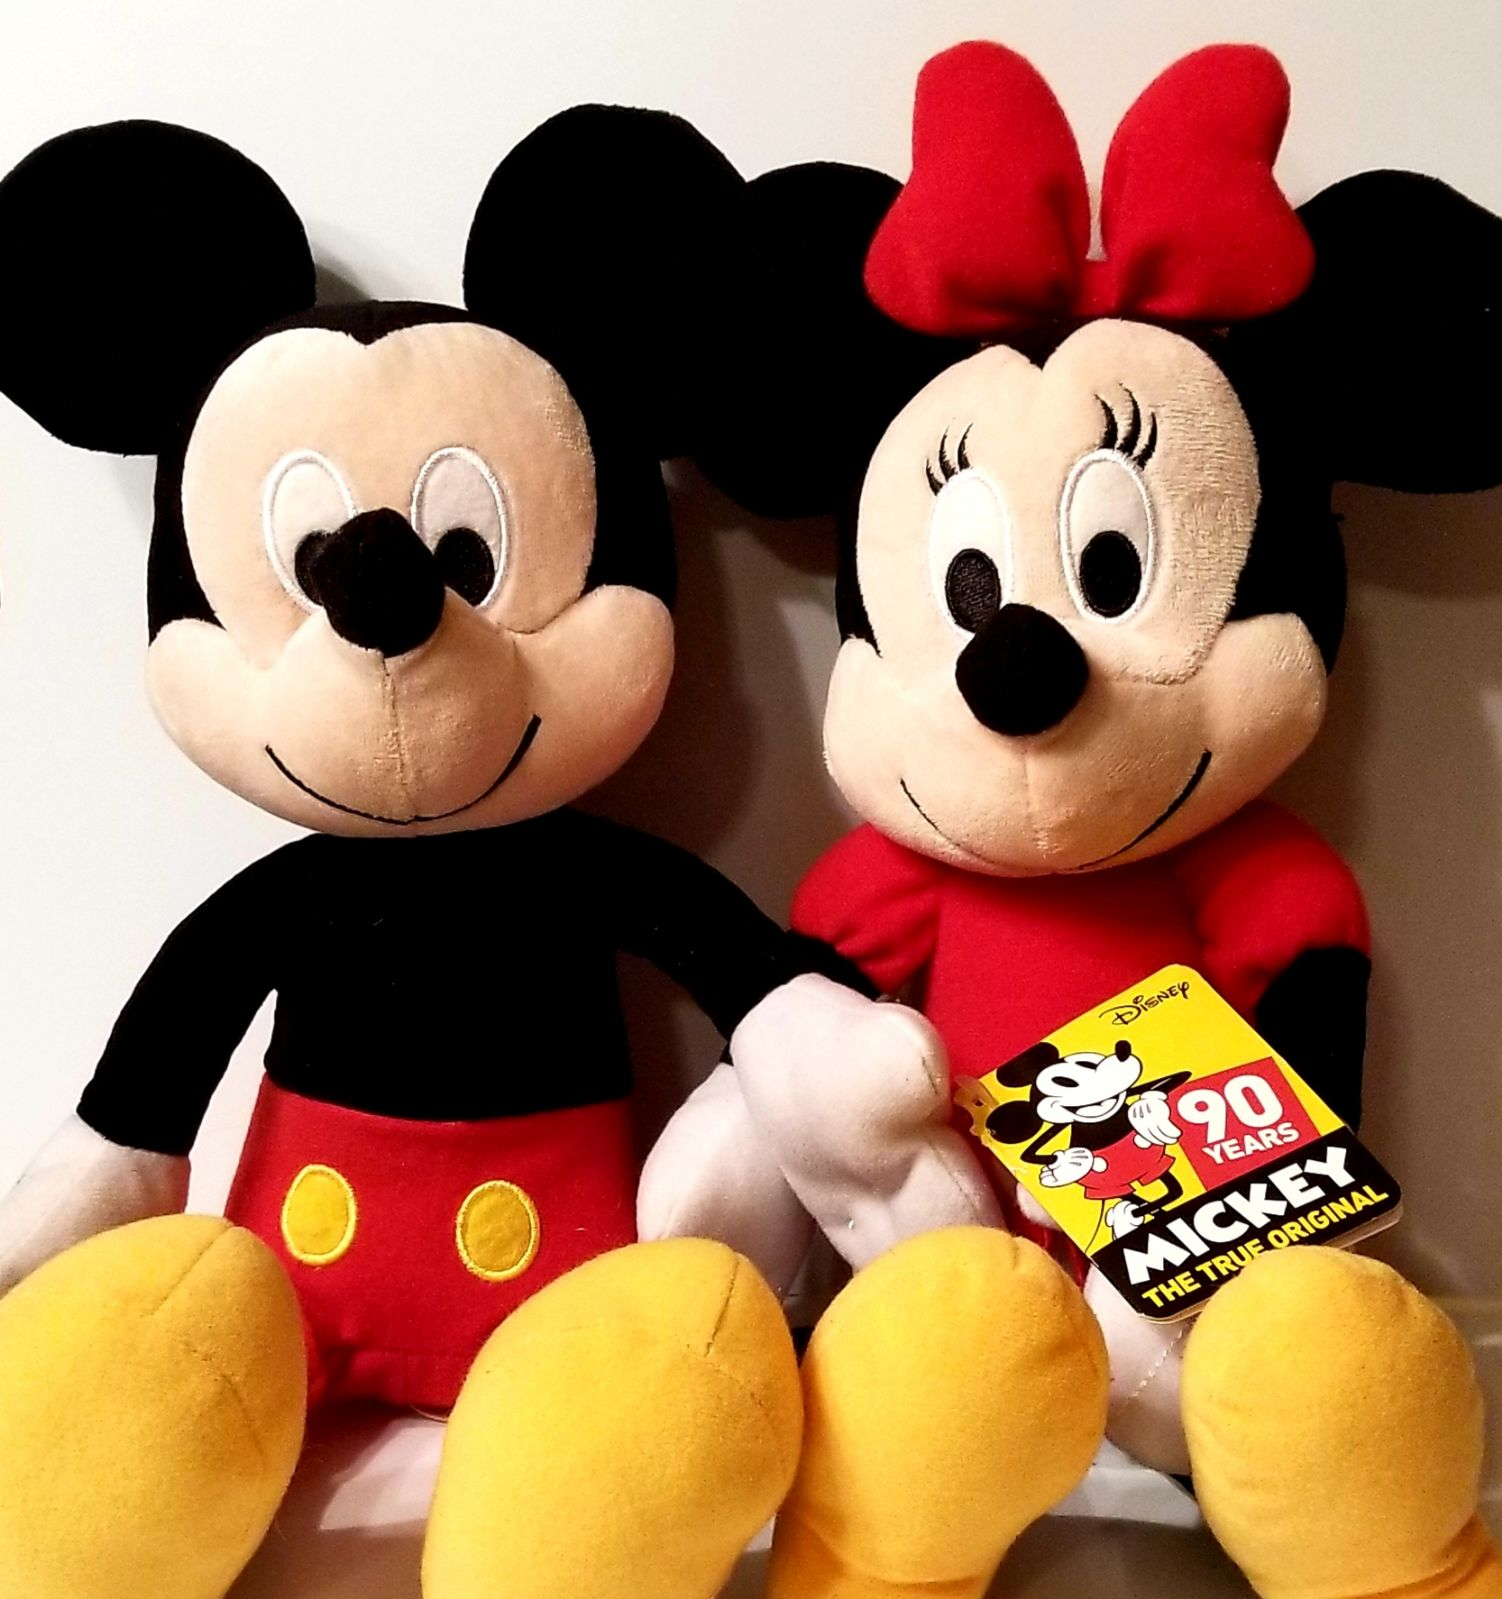 Mickey and Minnie mouse plush